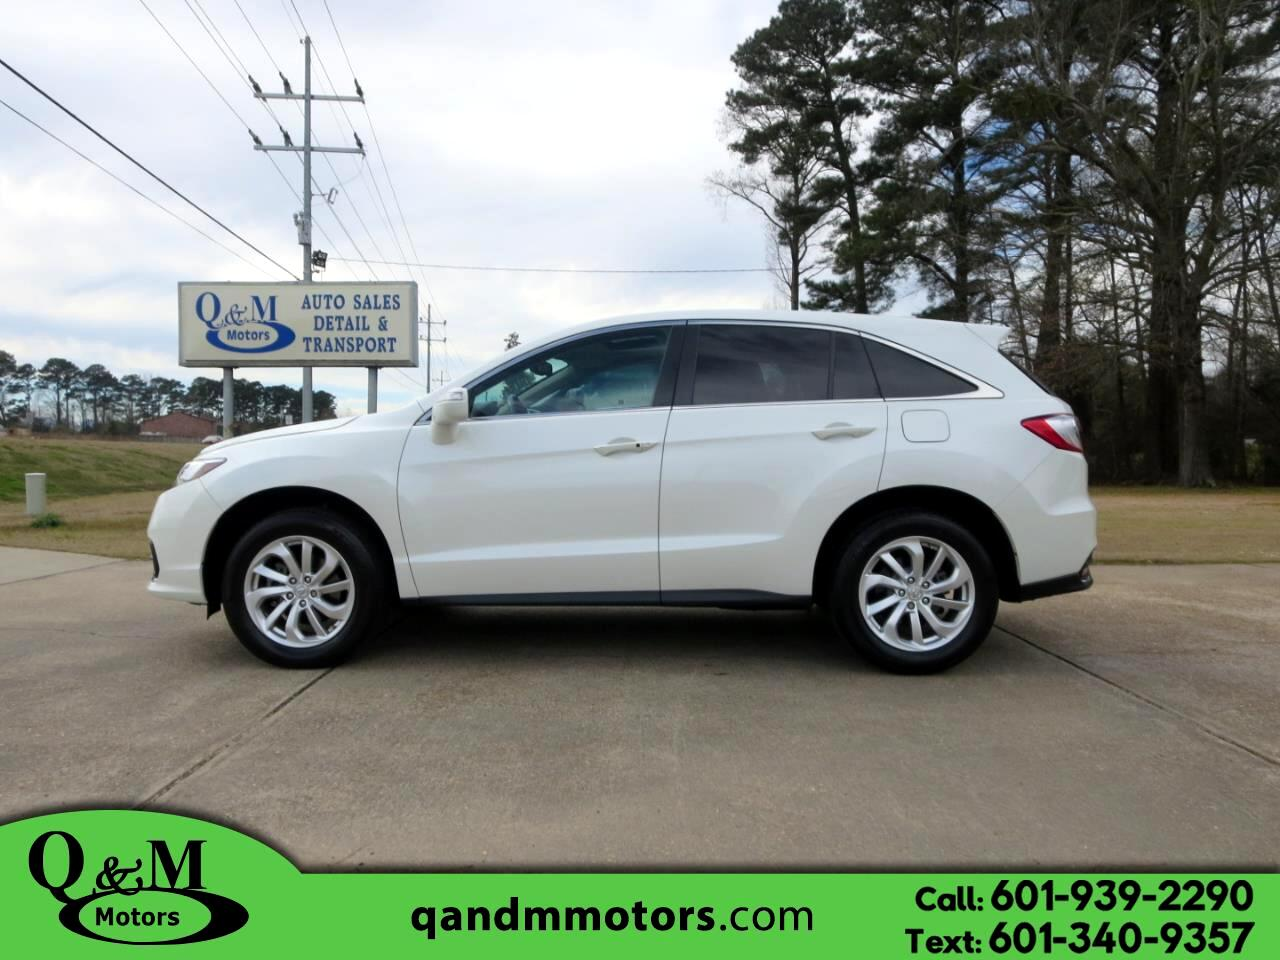 2016 Acura RDX FWD 4dr Tech/AcuraWatch Plus Pkg